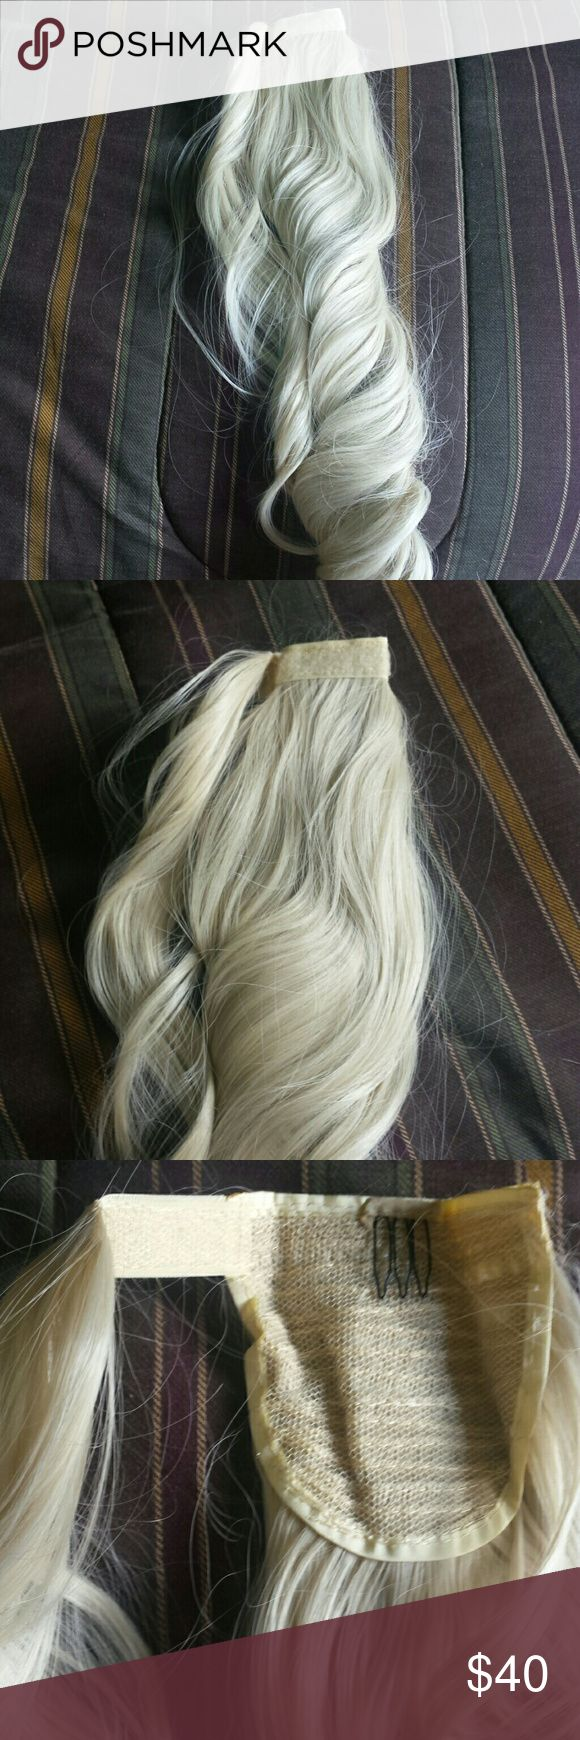 Wrap around ponytail hair piece Beautiful on brand new never used or worn . It wraps around ur pony tail Accessories Hair Accessories